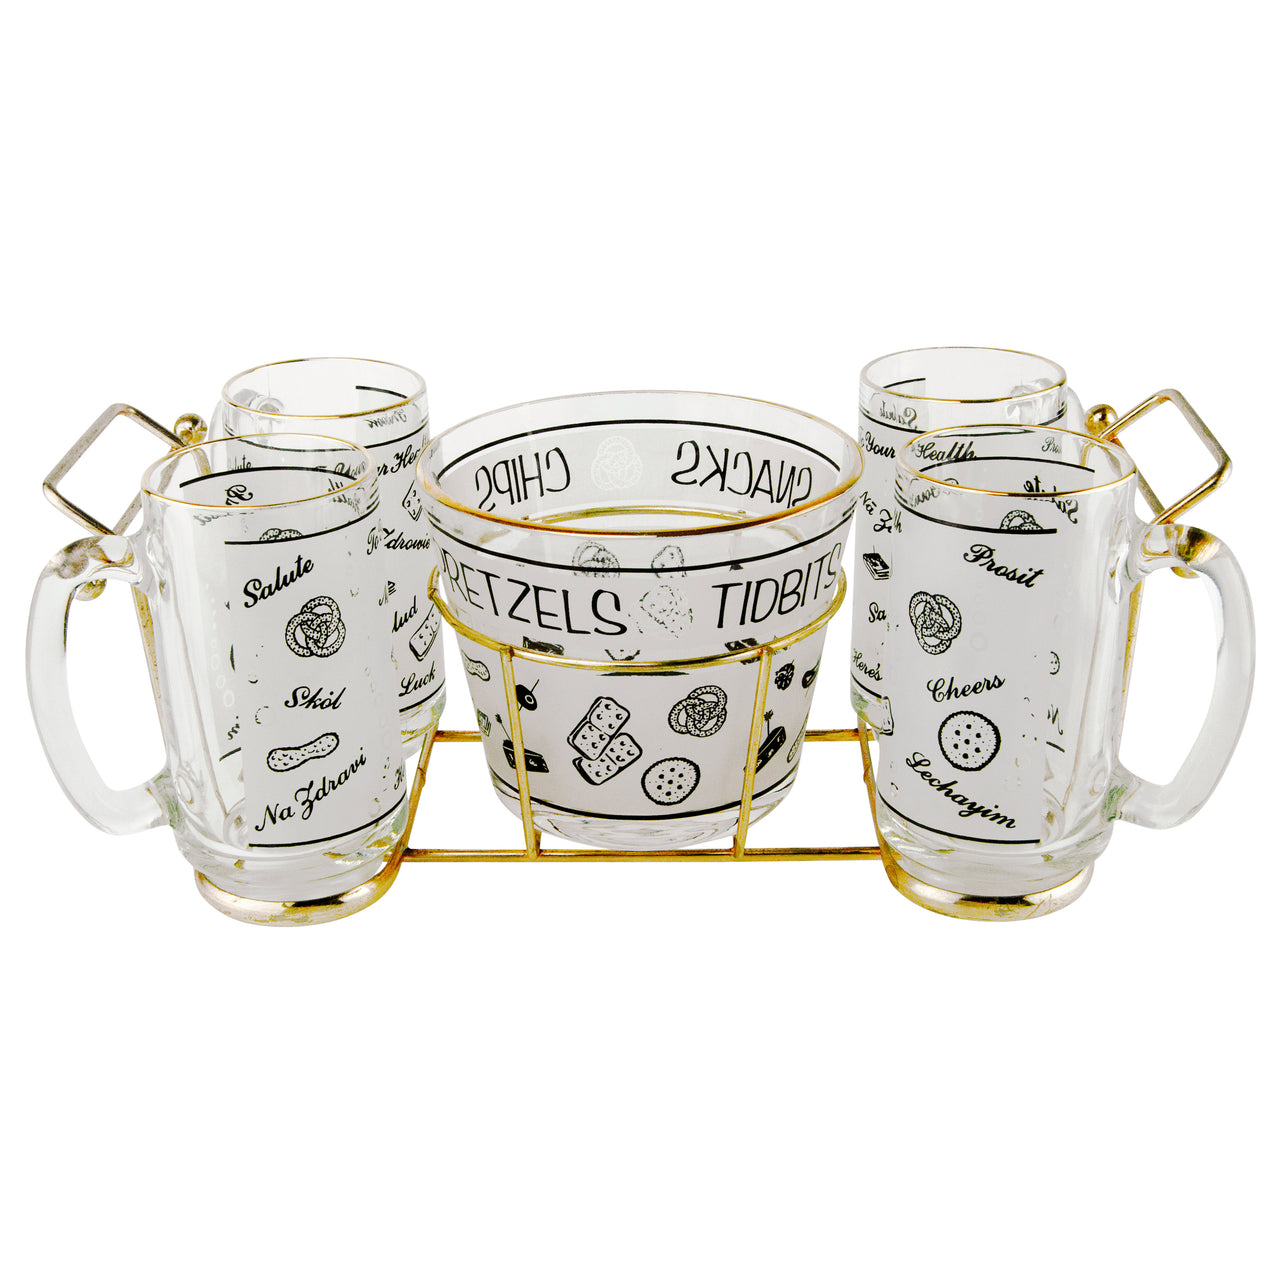 Starlyte Beer Mugs & Pretzel Bowl Caddy Set